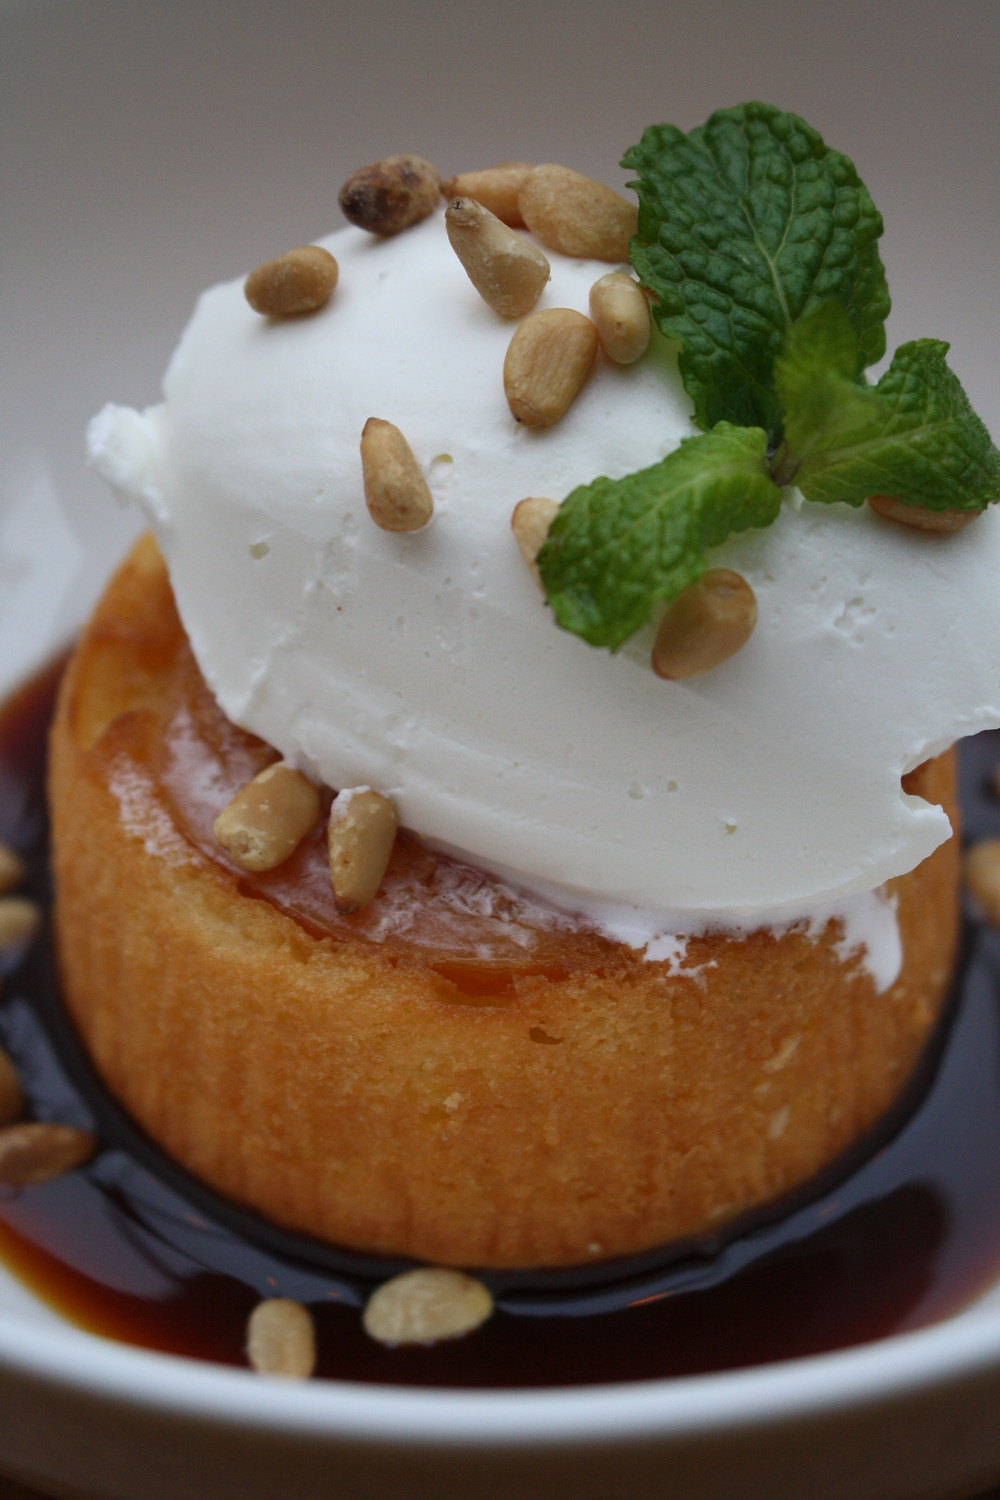 lemon upside-down cake blood orange caramel, vanilla chantilly, toasted pine nuts